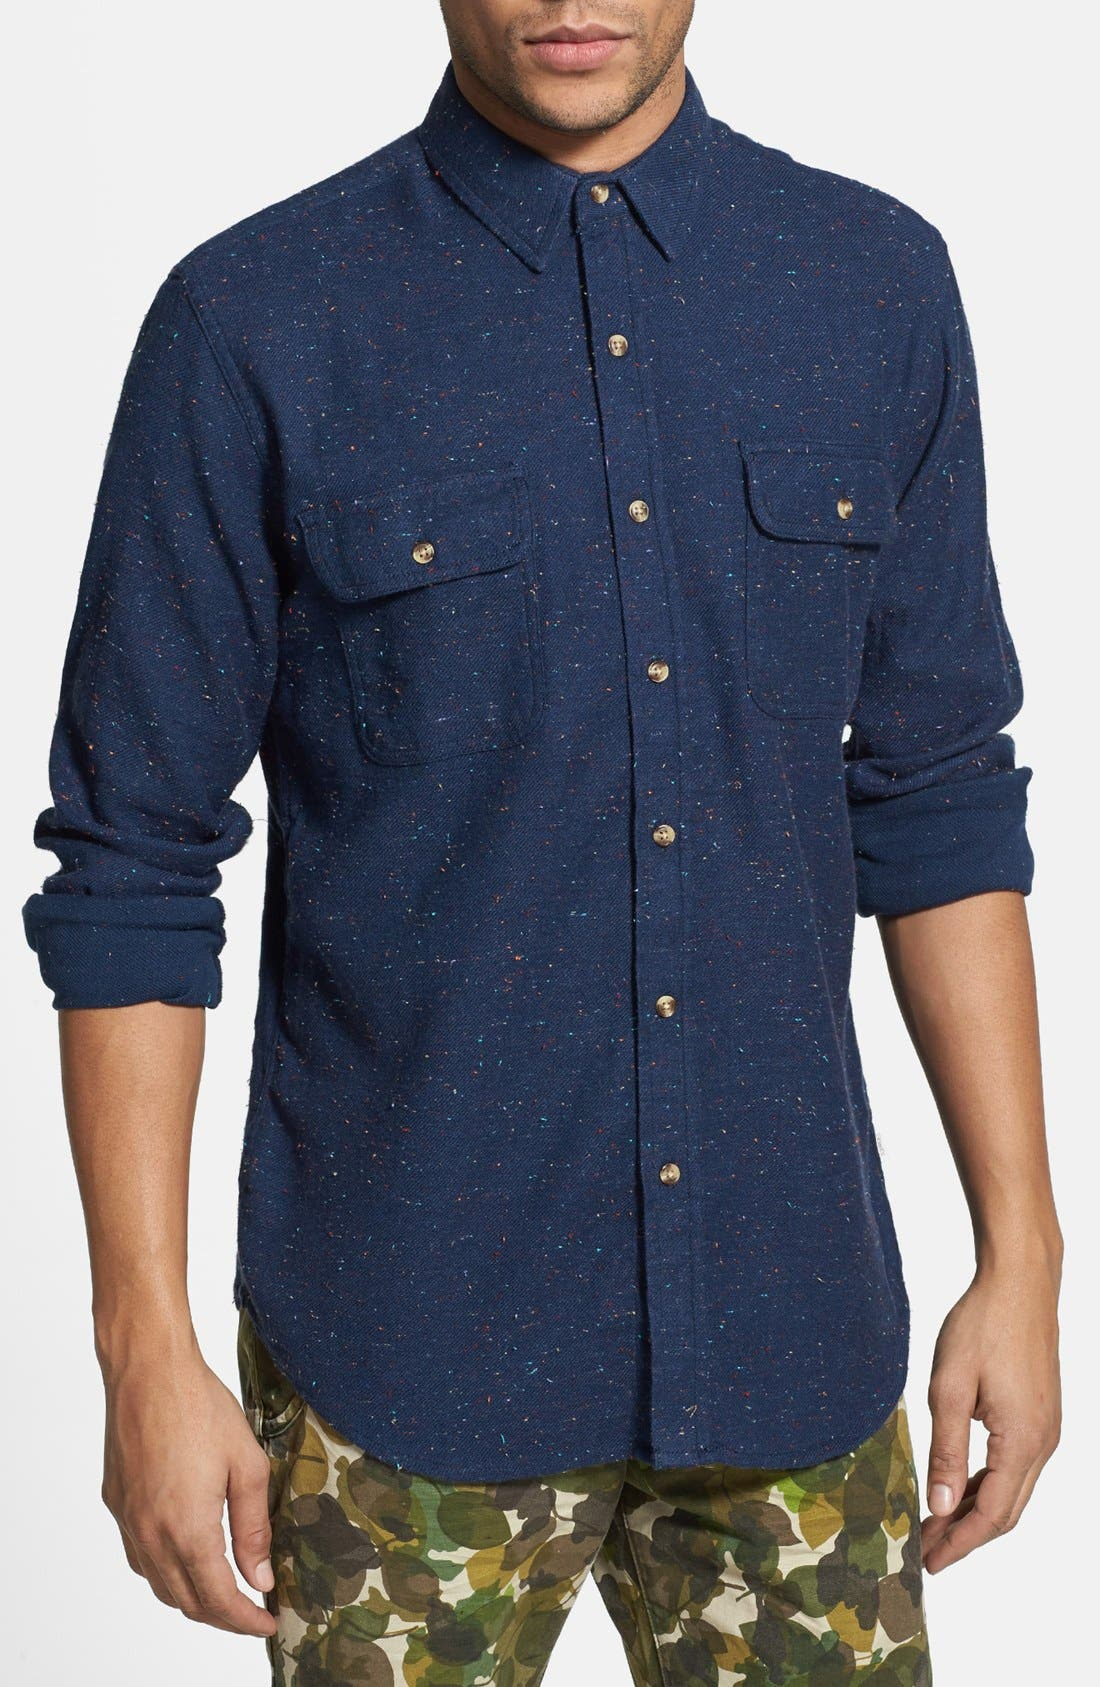 Alternate Image 1 Selected - Obey 'Heritage' Flecked Cotton Shirt